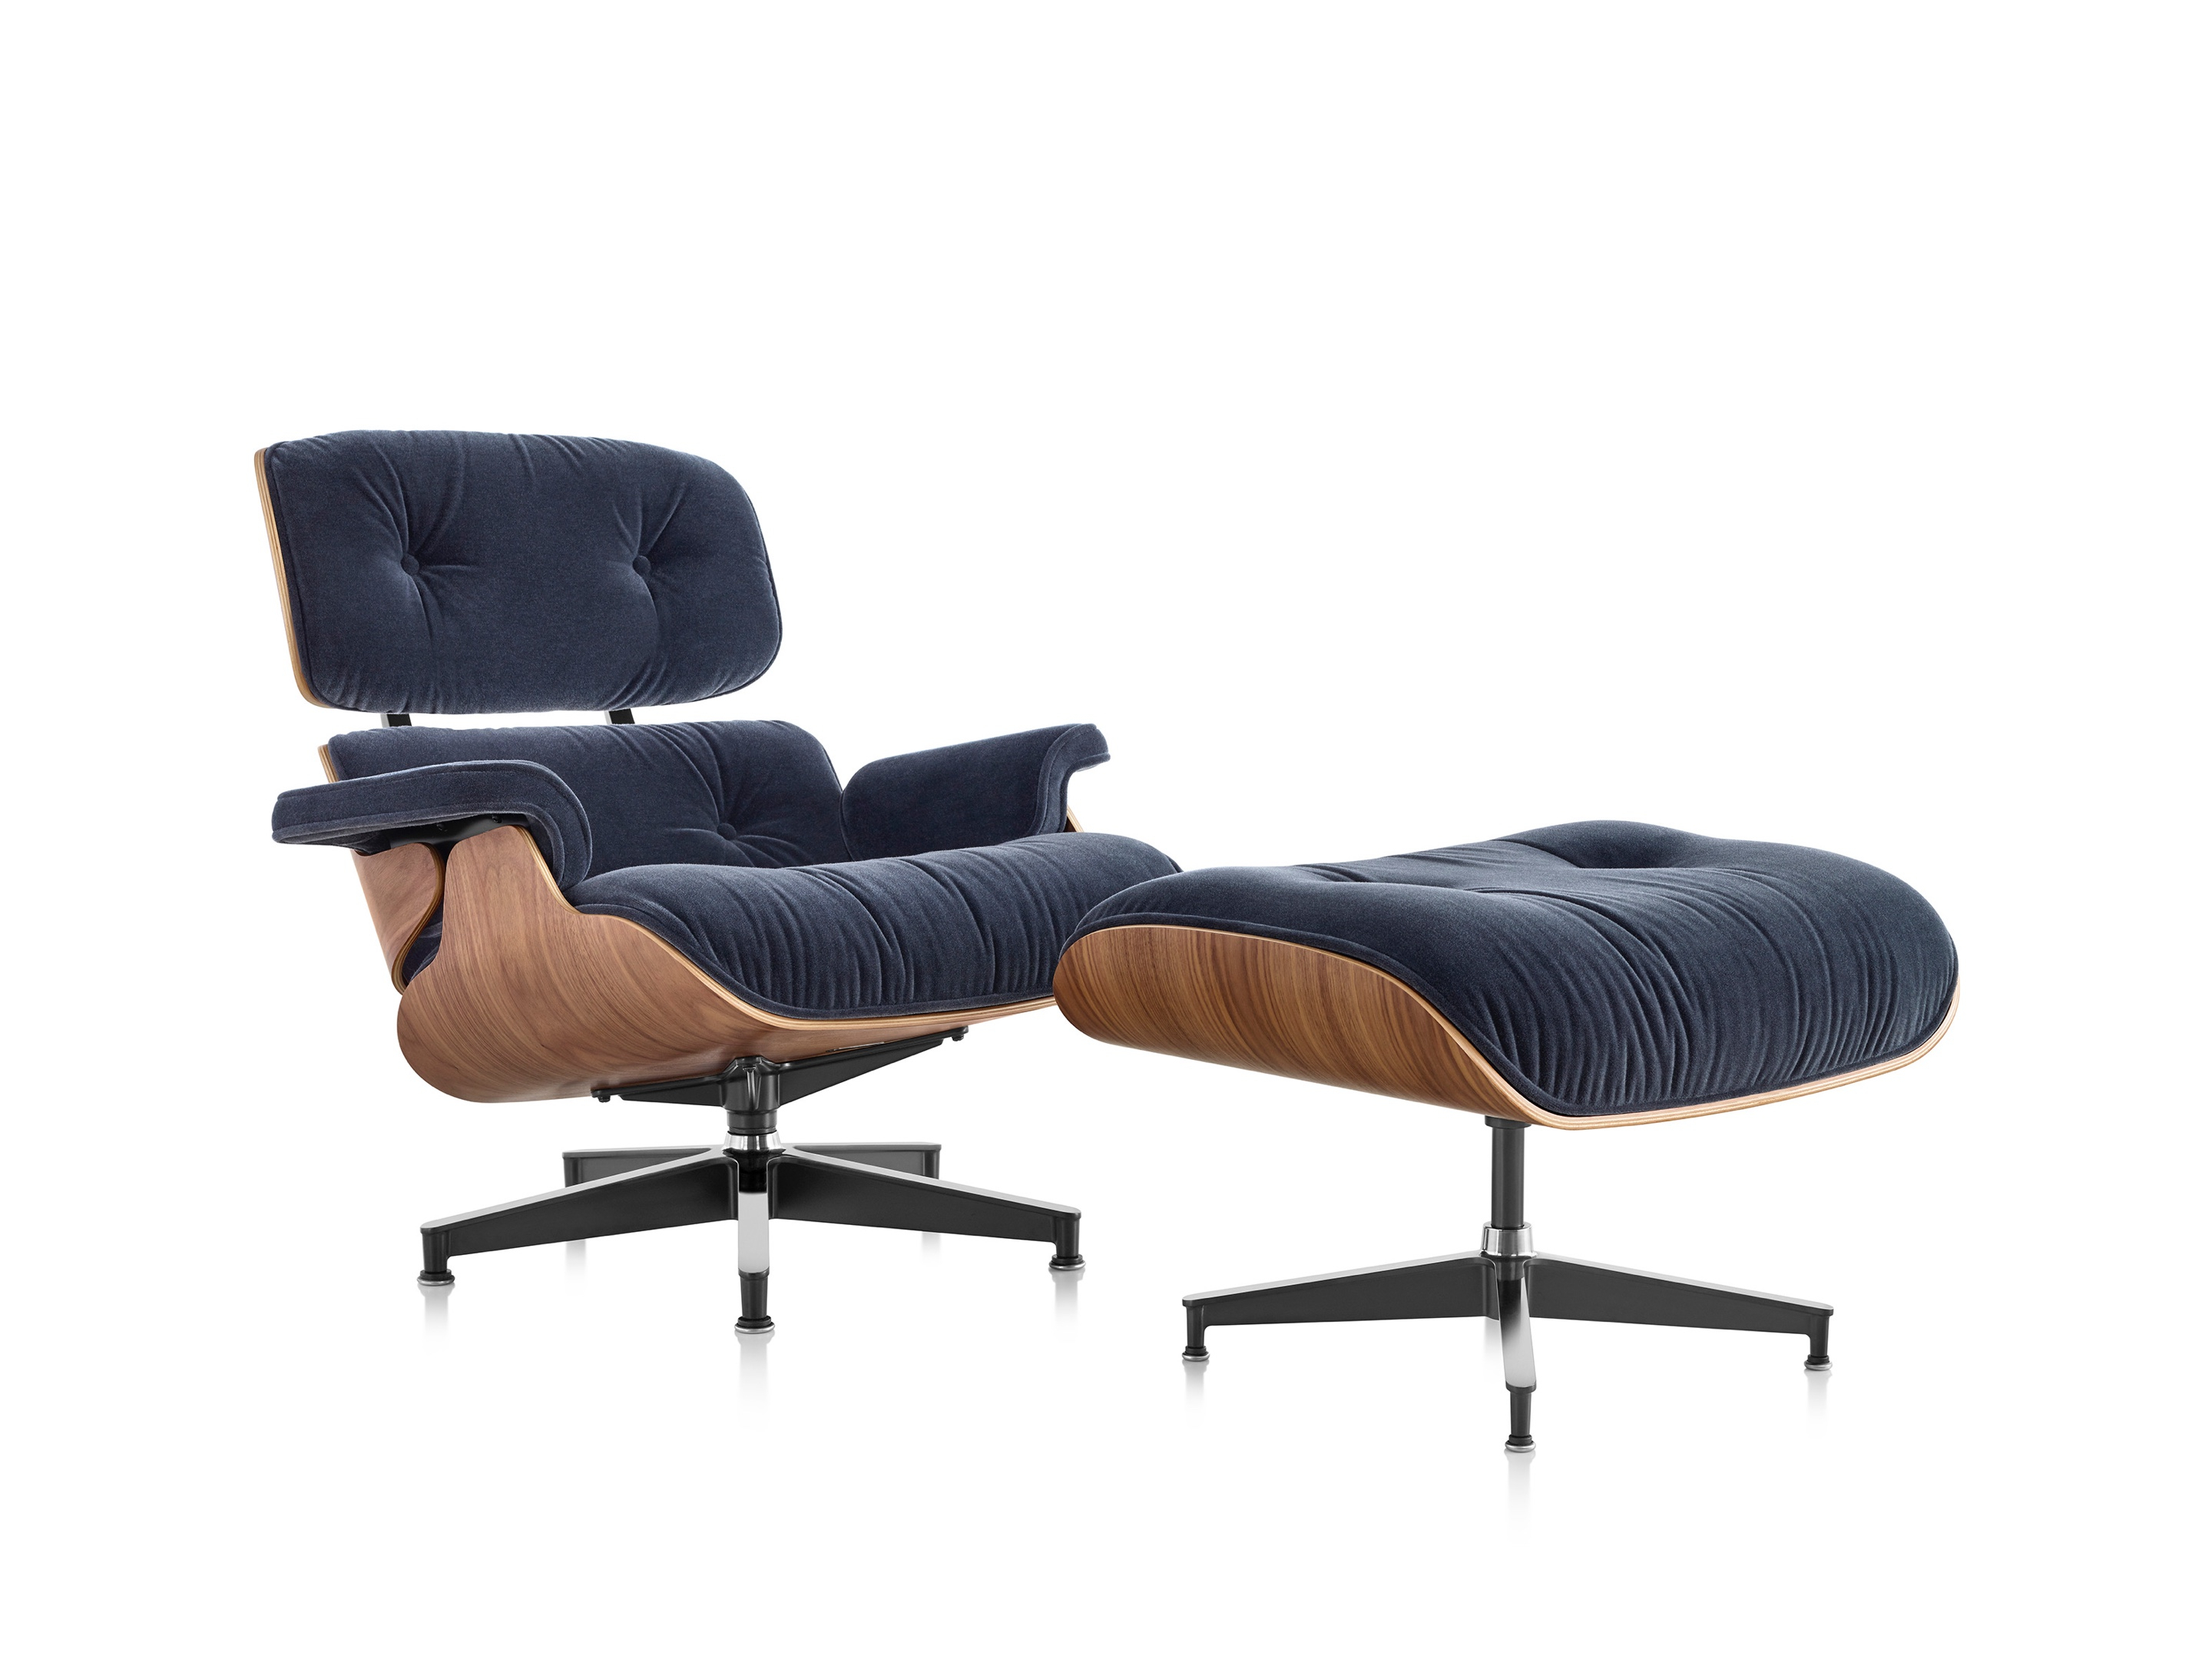 Ames Arm Sofa Chairs Within Latest Eames® Lounge Chair And Ottoman – Herman Miller (View 5 of 20)